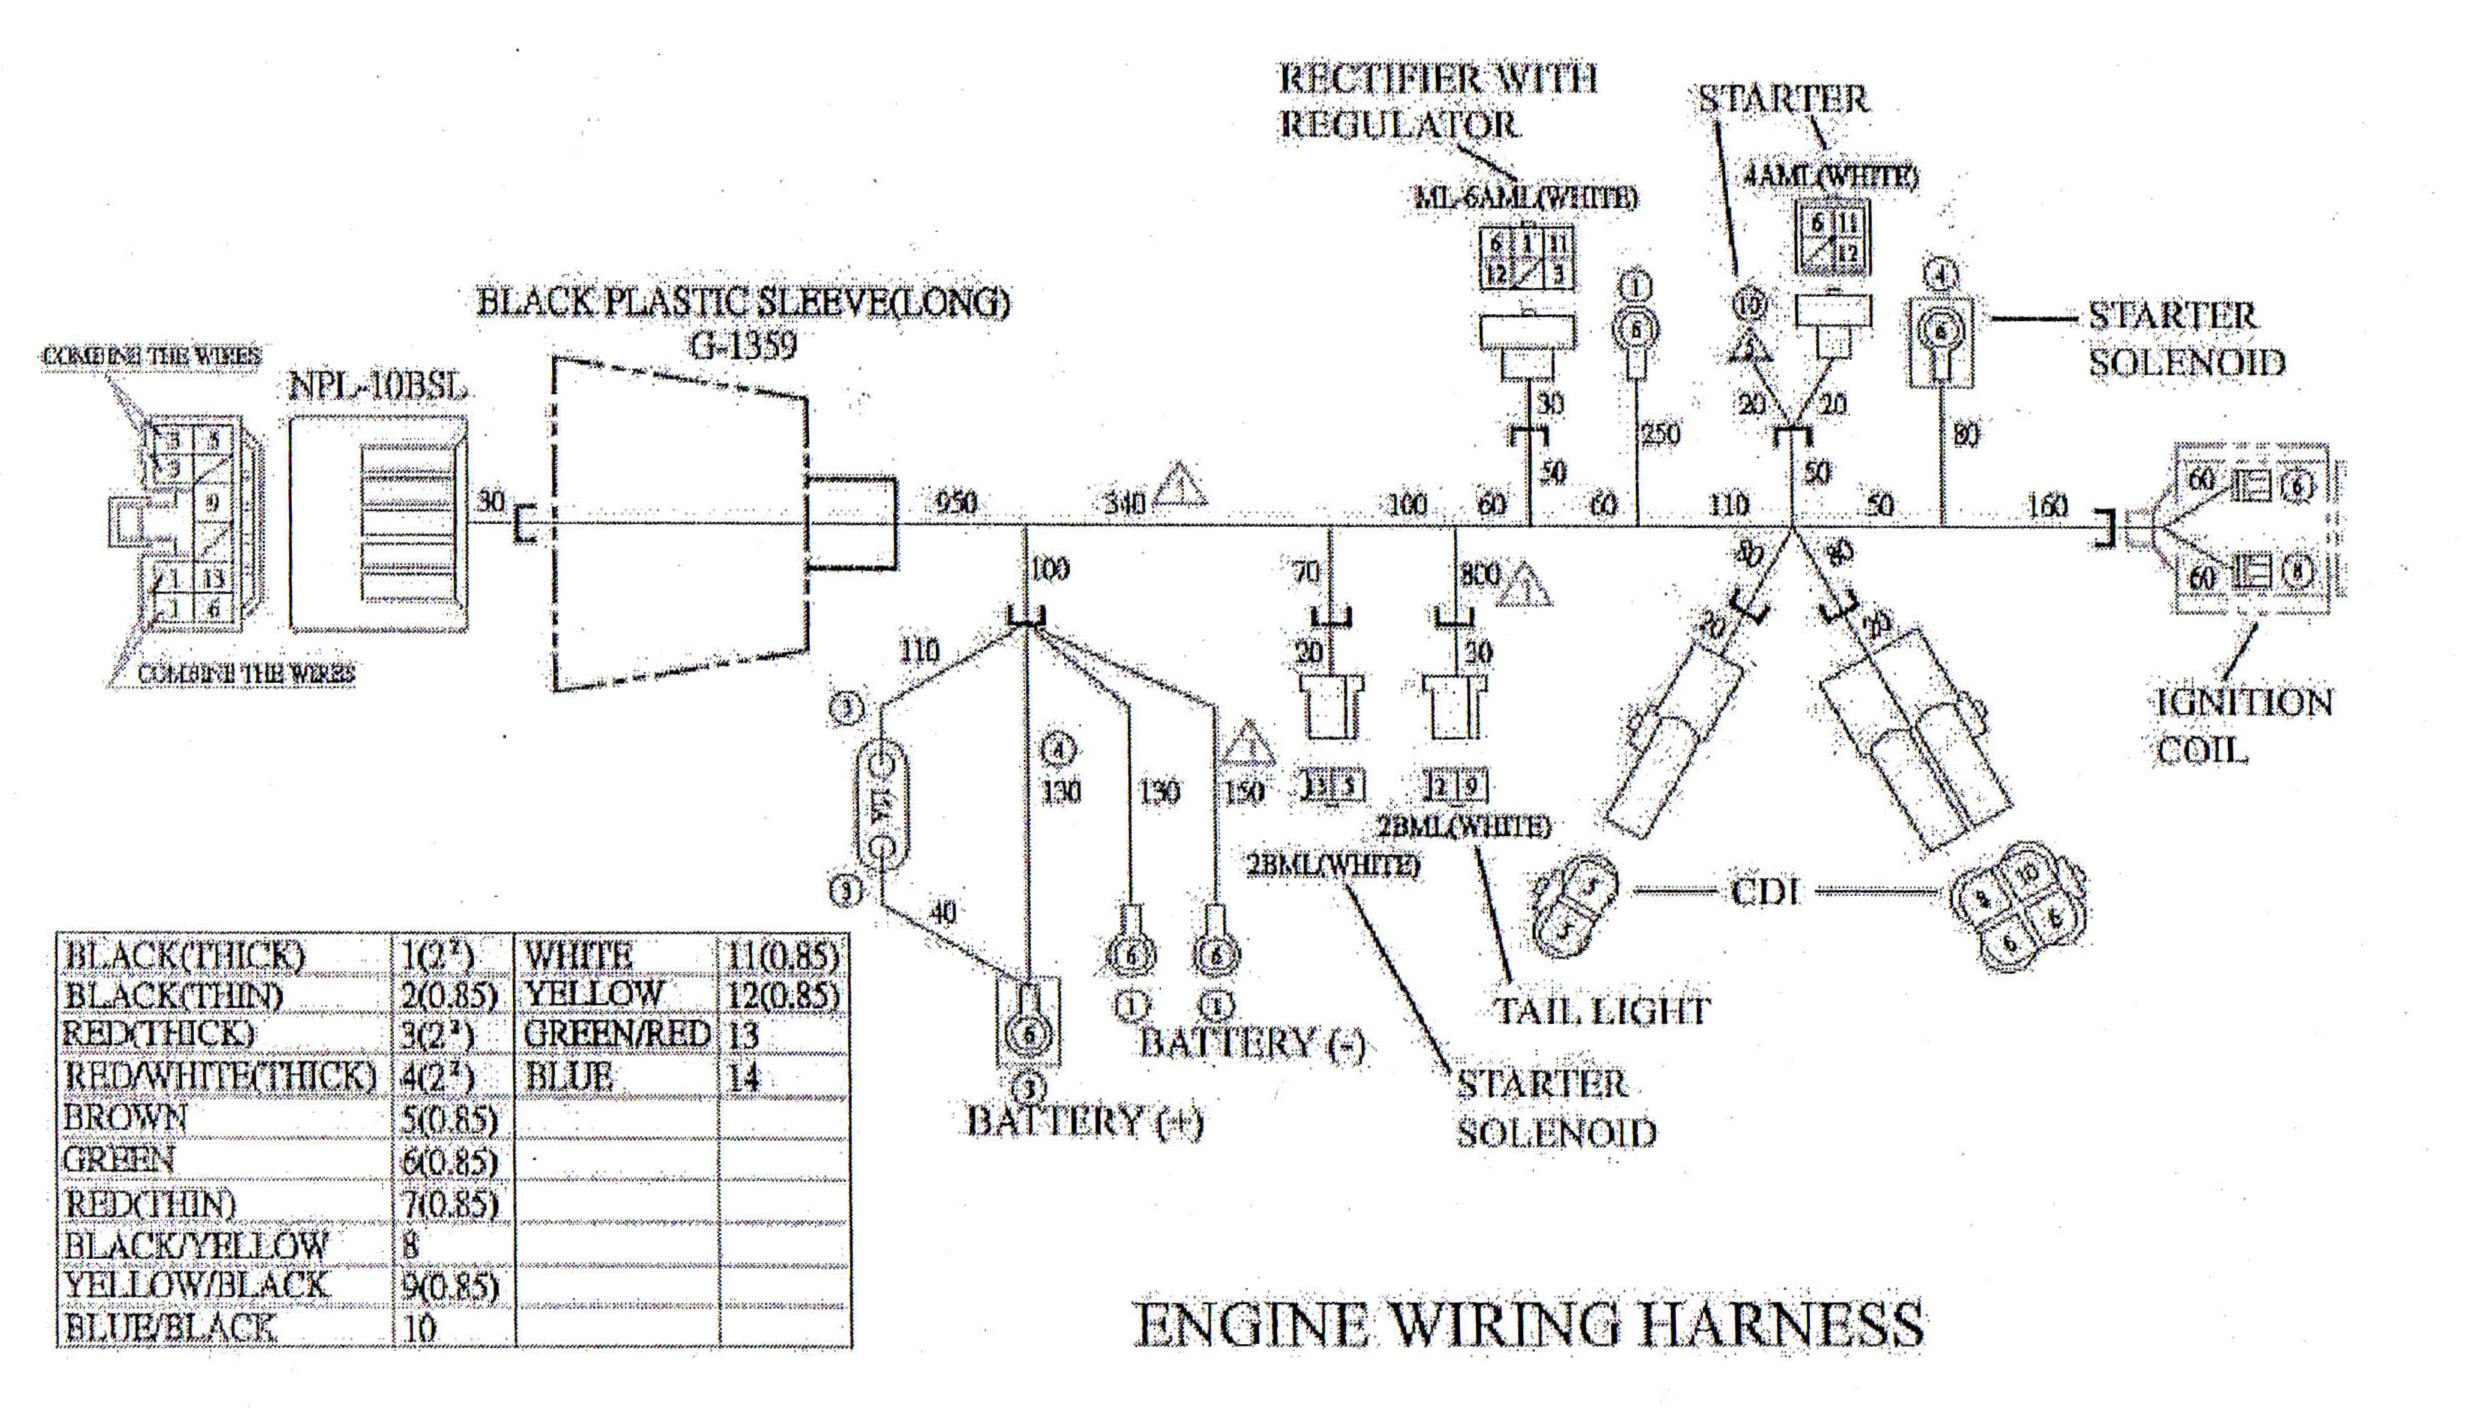 honda gx390 wiring diagram wiring diagram image oil alert honda gx390 wiring-diagram wiring diagram for the engine wiring harness to the yerf dog cuv